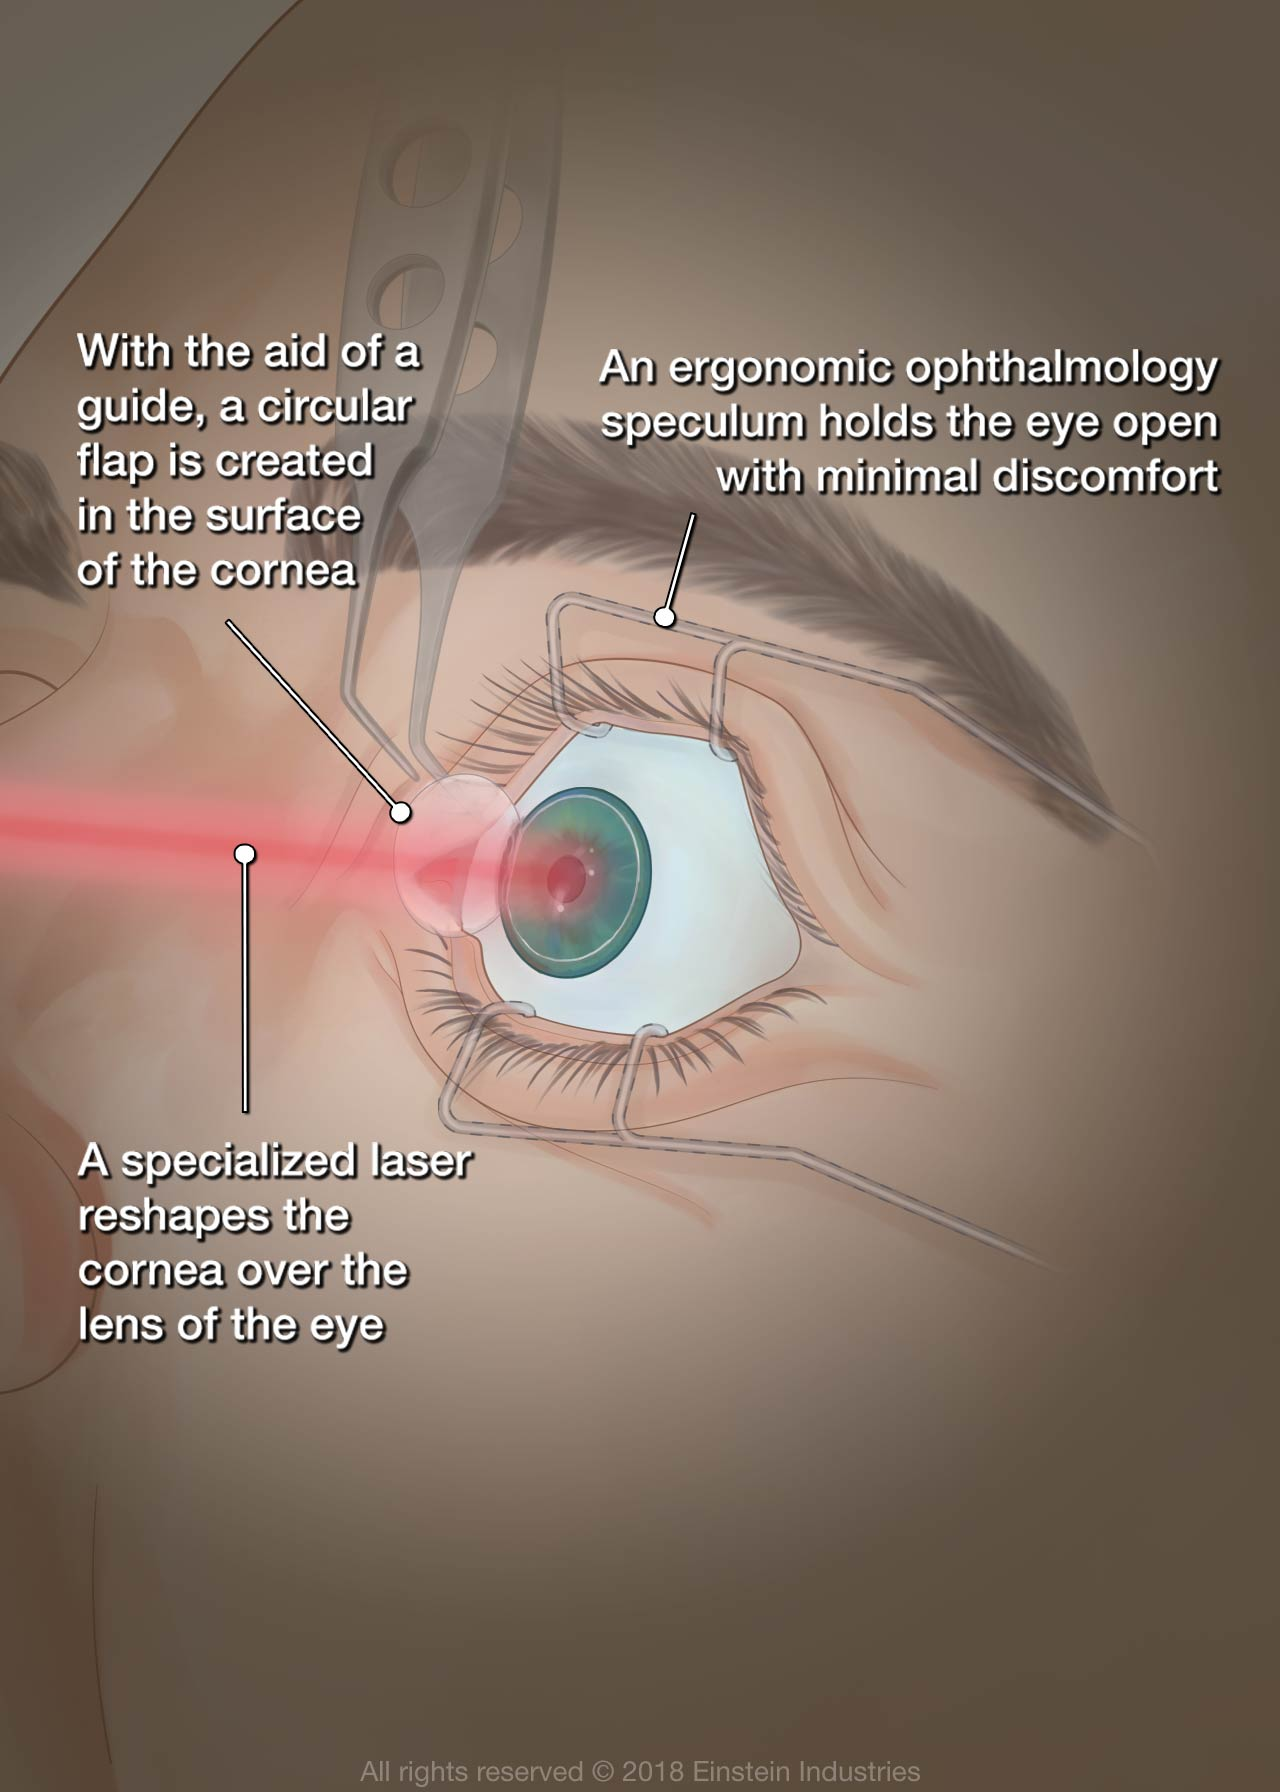 LASIK - Chicago, IL - Wicker Park Eye Center